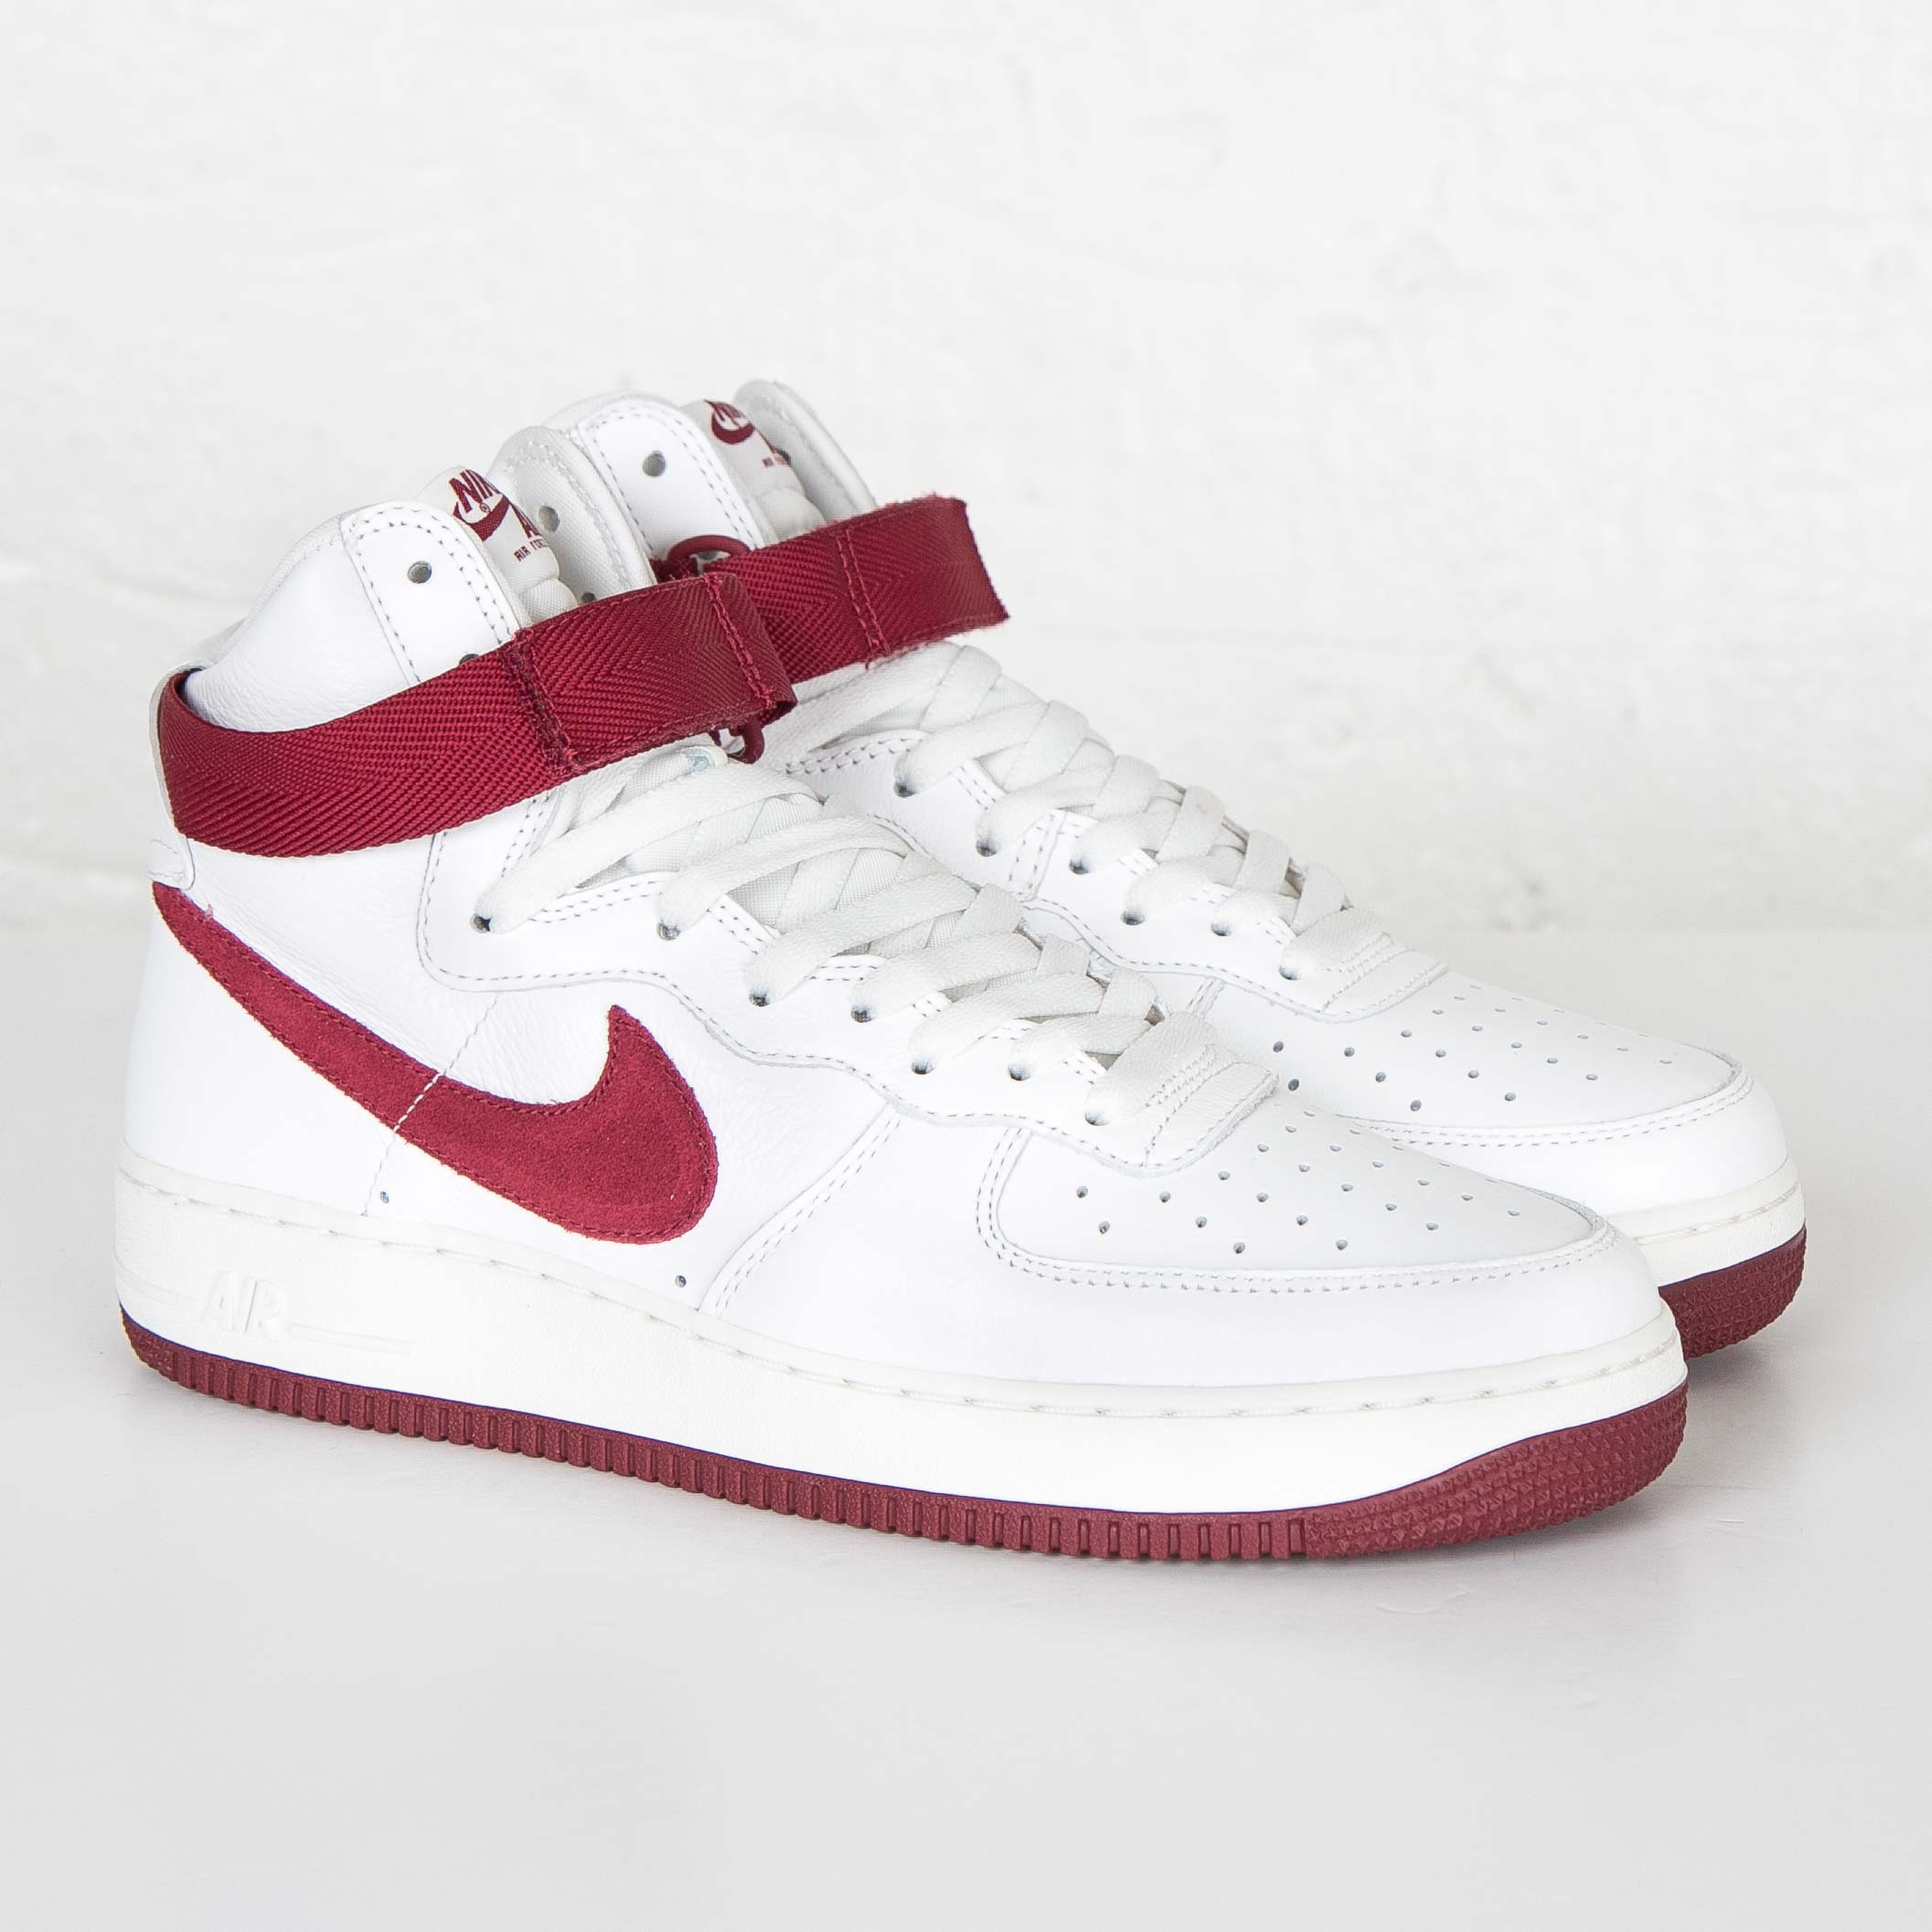 Nike Air Force 1 Hi Retro QS Team Red White Mens Shoes